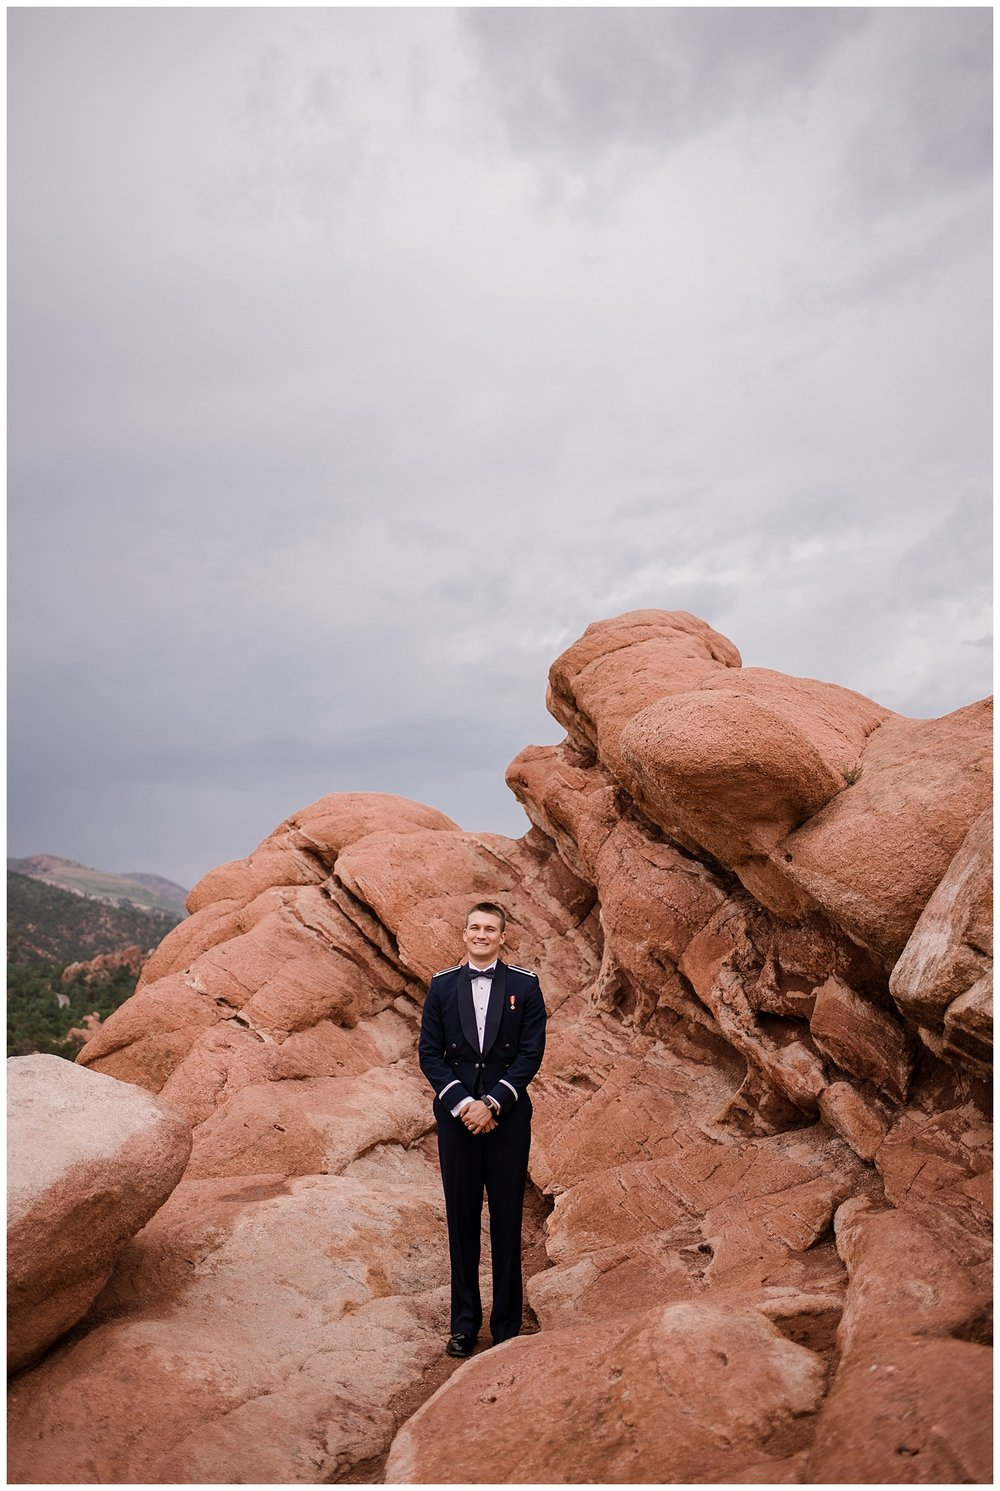 Military Wedding, bride and groom, navy suit groom, dress blues groom, bridal party, romantic portraits at garden of the gods, bride and groom at garden of the gods, Colorado Wedding Photographer, Denver Wedding Photographer, Denver Elopement Photographer, Colorado Elopement Photographer, Rocky Mountain Wedding Photographer, Downtown Denver Photographer, colorado springs wedding